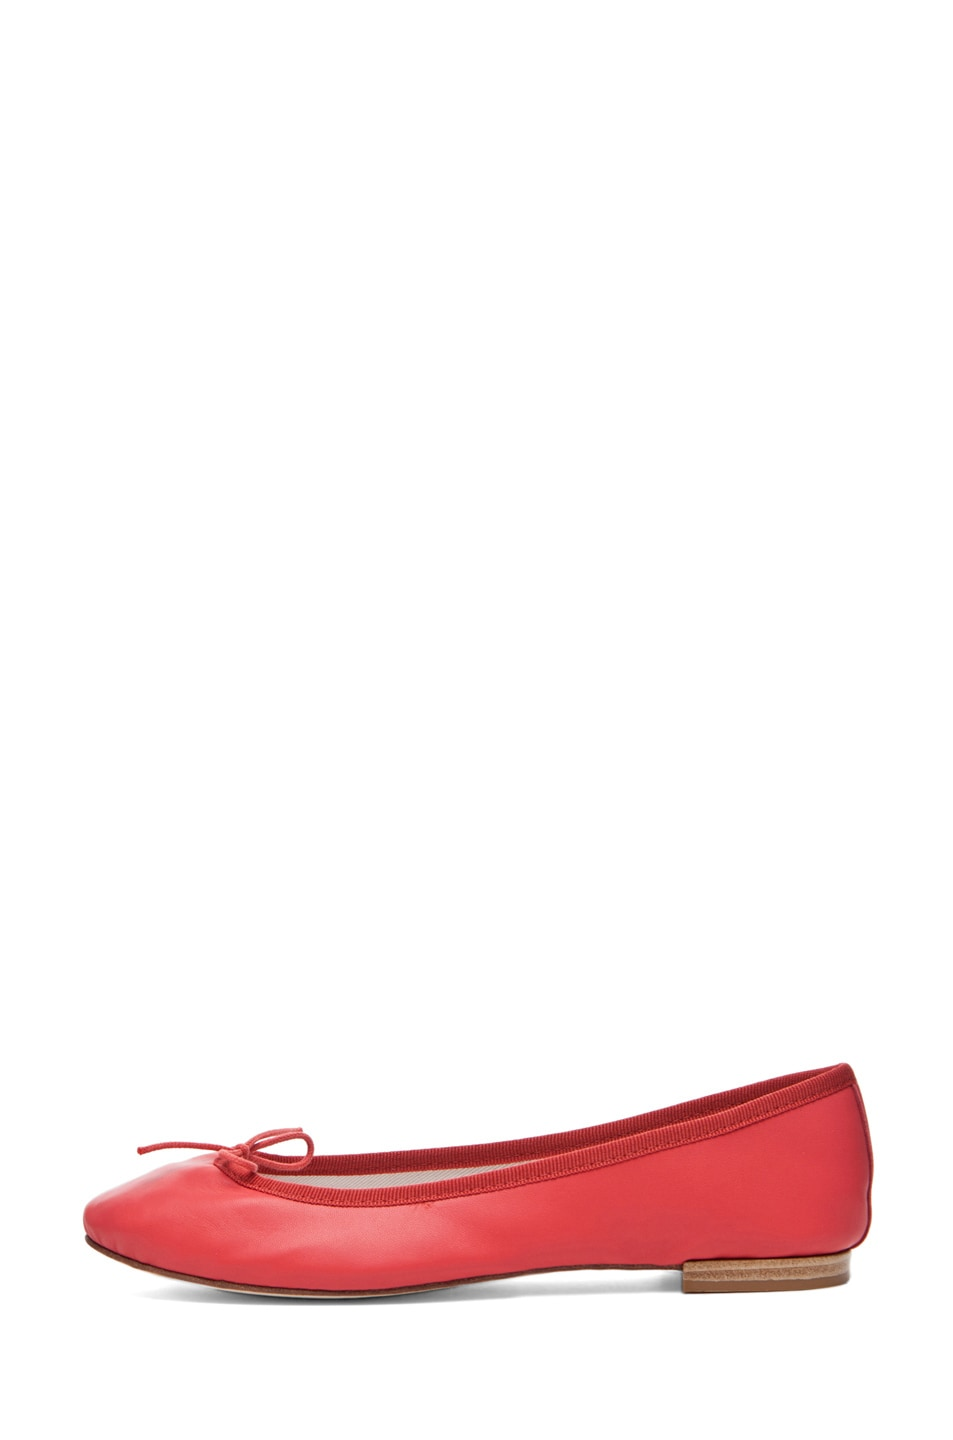 Image 1 of Repetto Lambskin Flat in Coral